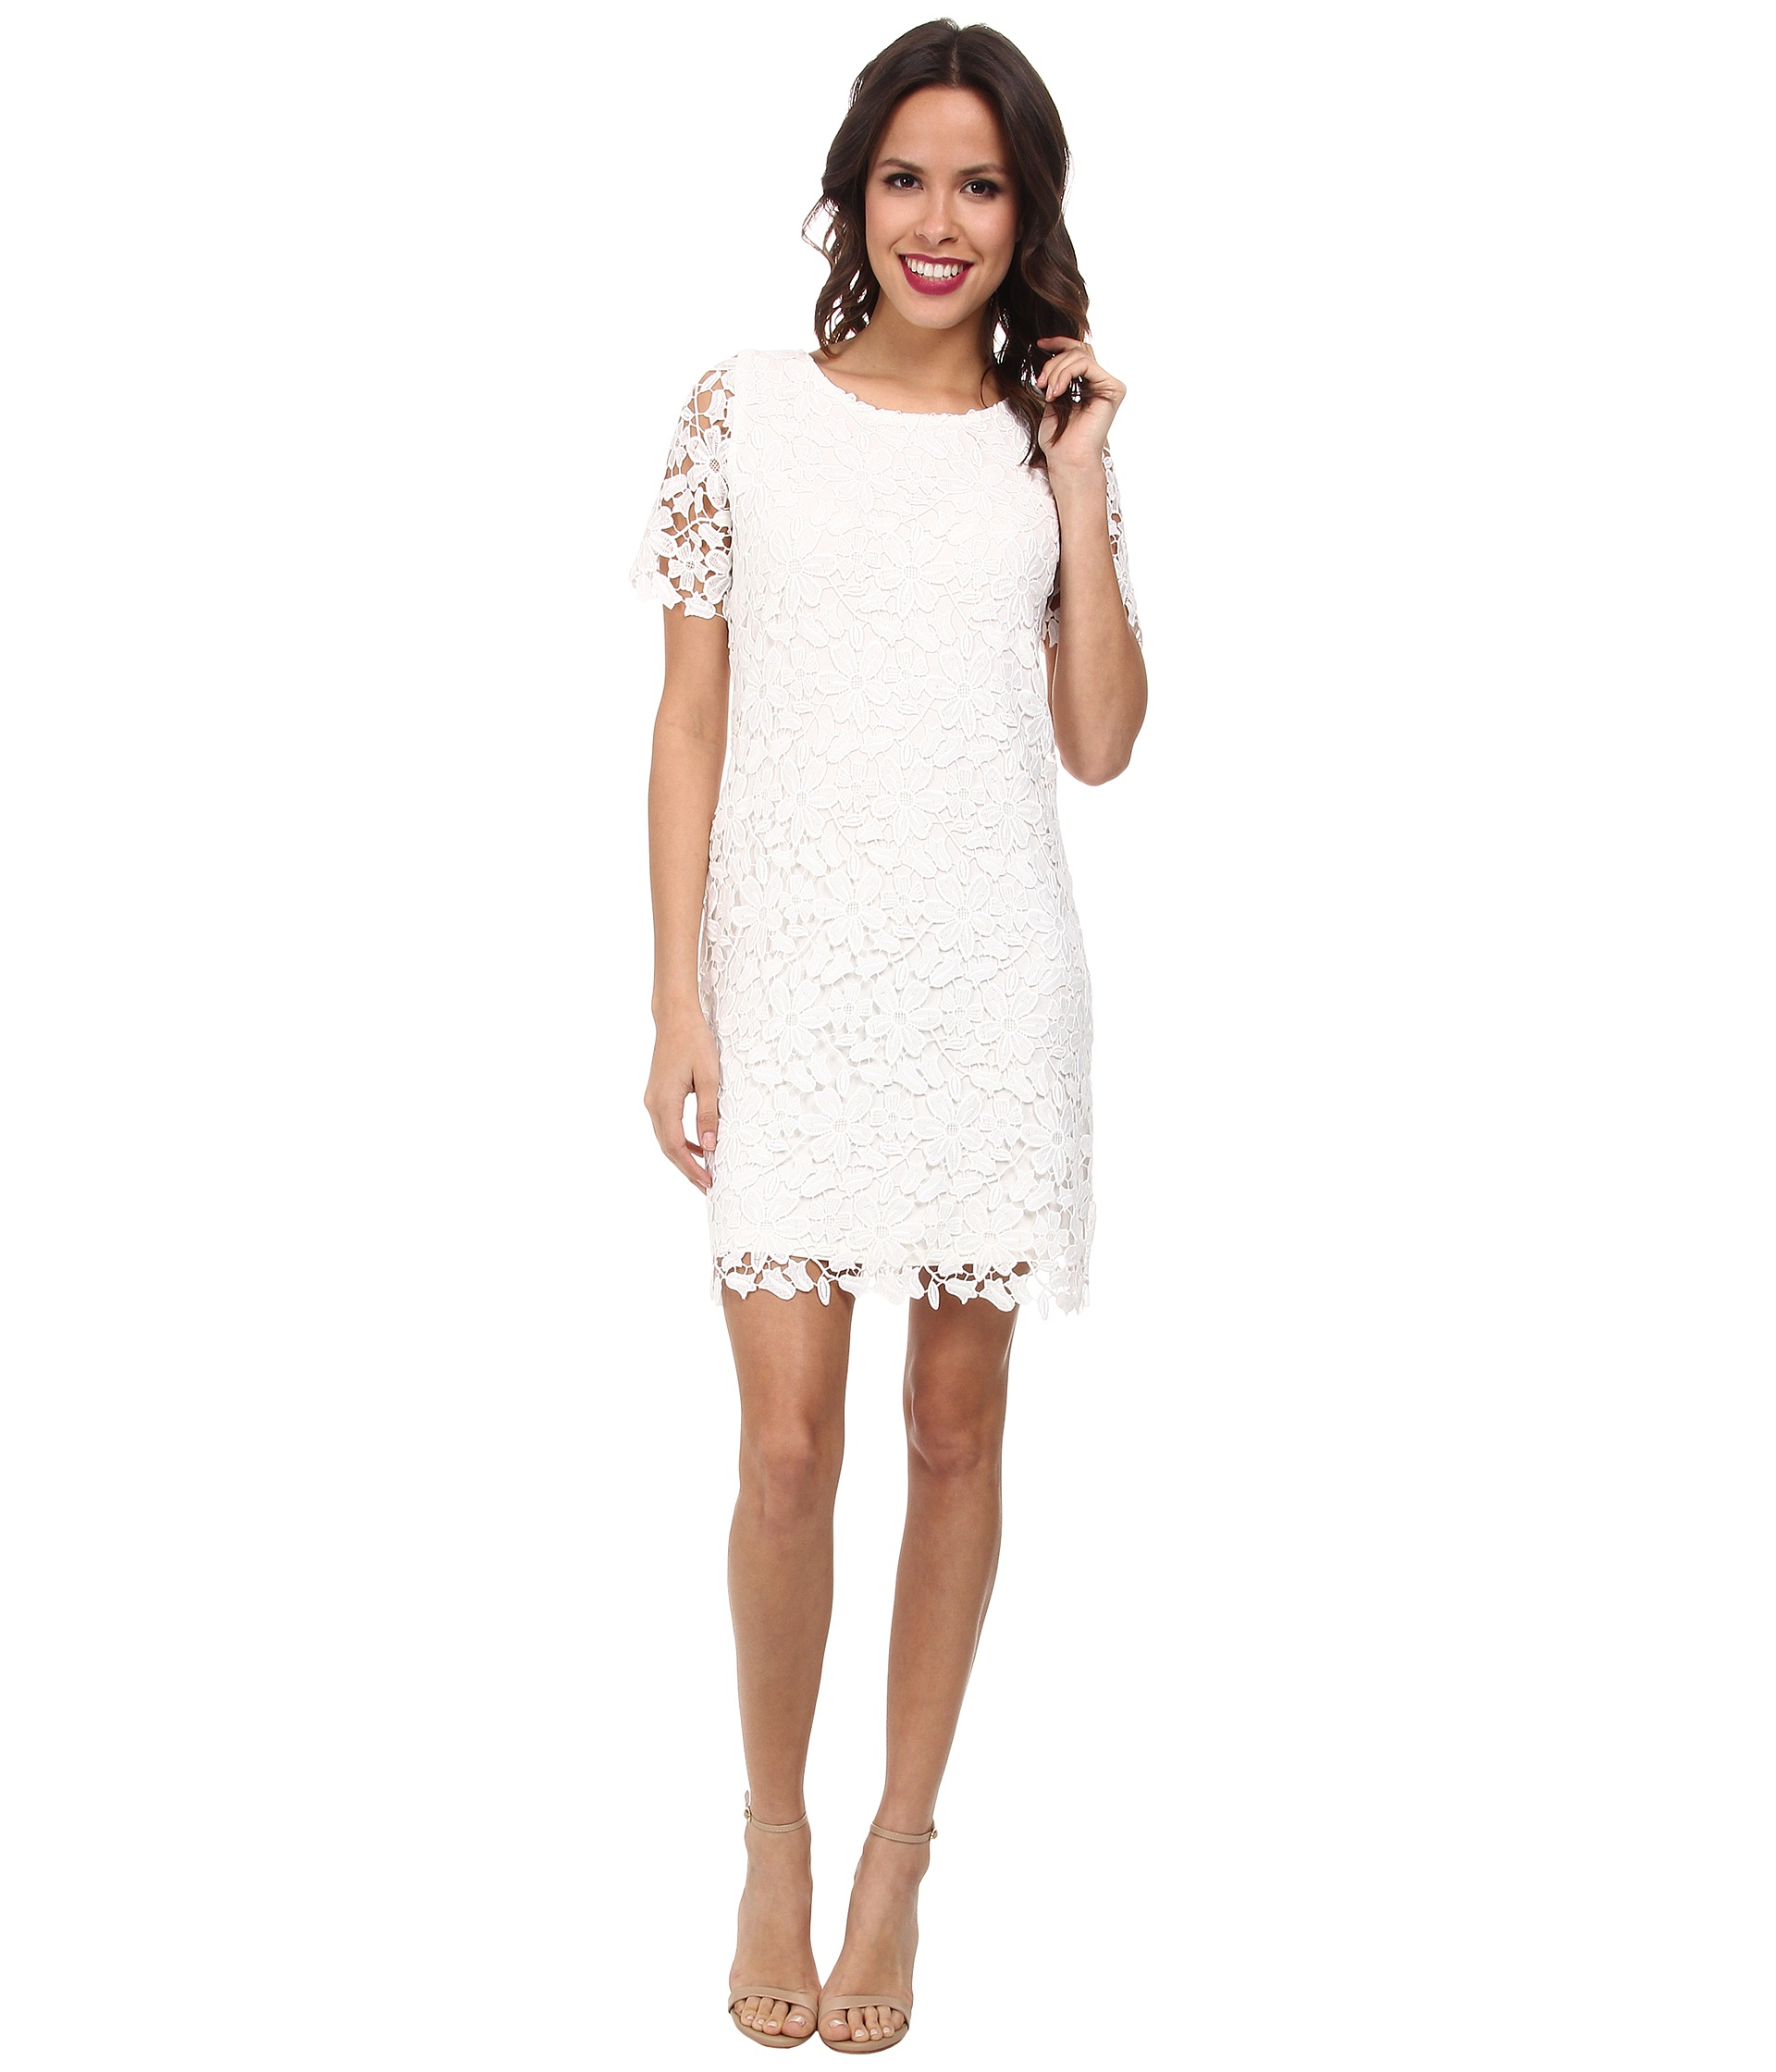 f4e1bfb113 Lyst - Kut From The Kloth Allover Lace Dress in White